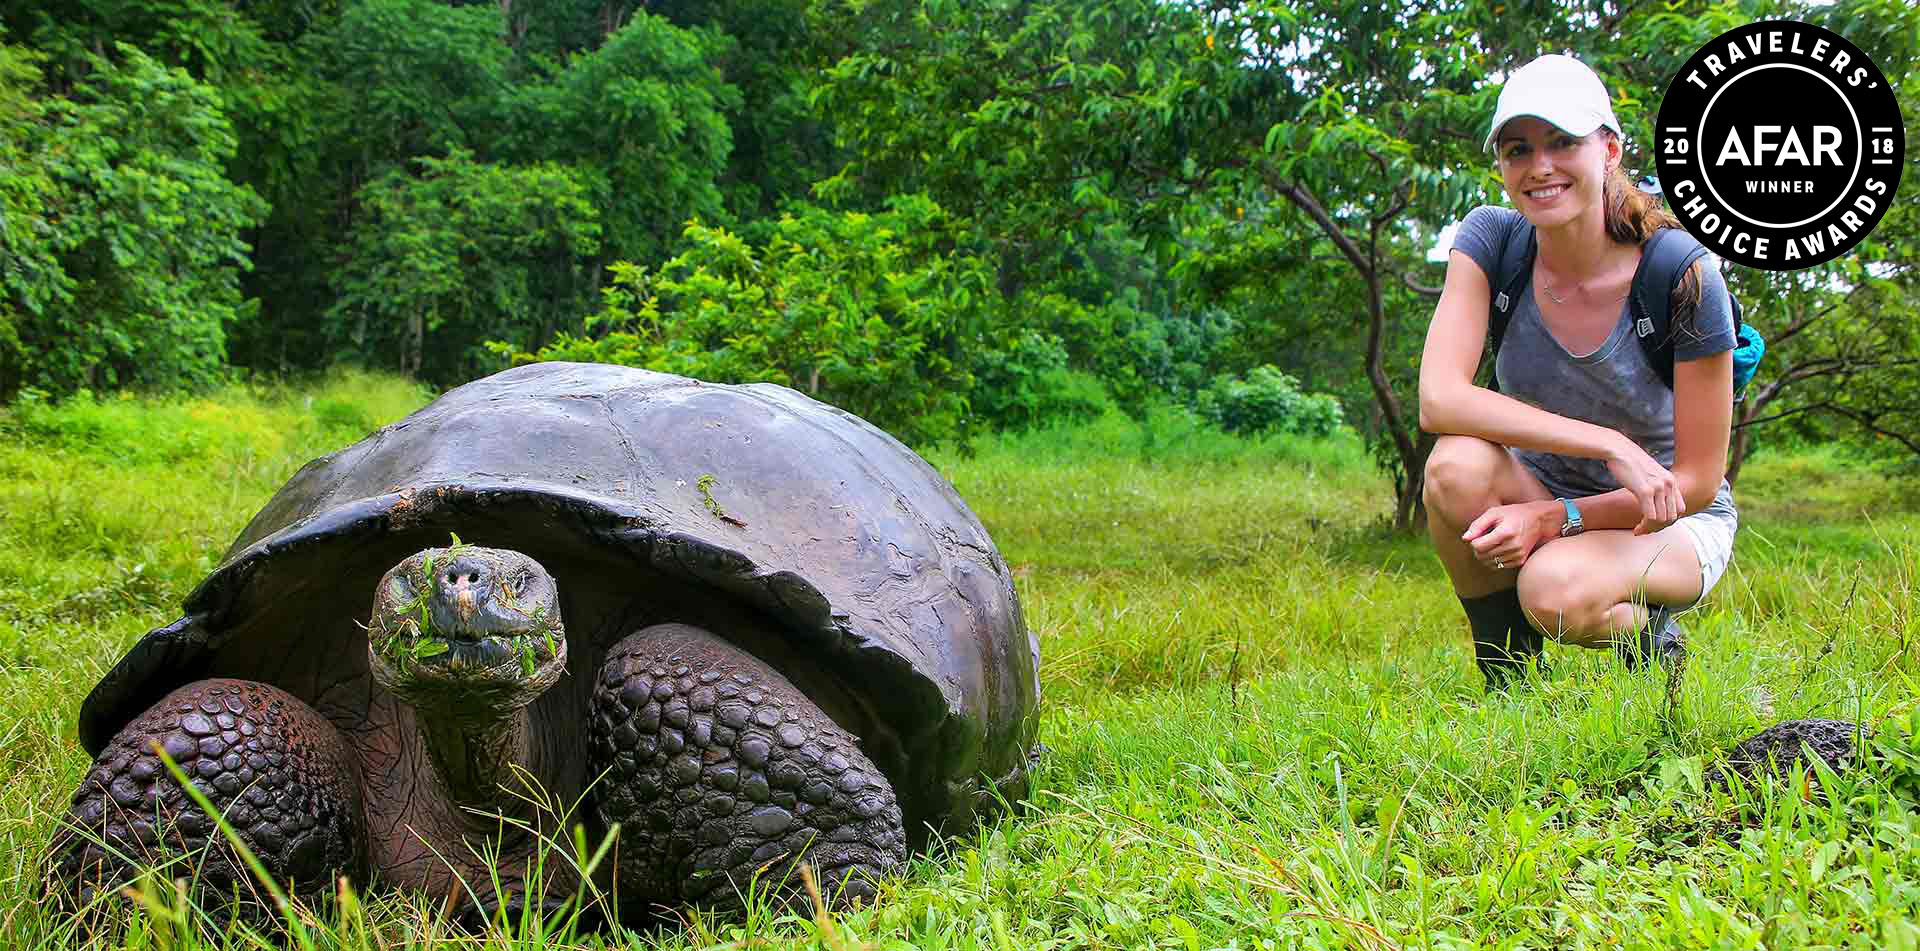 South America Ecuador Galapagos Islands beautiful wild life Darwin Giant Tortoise  -luxury vacation destinations